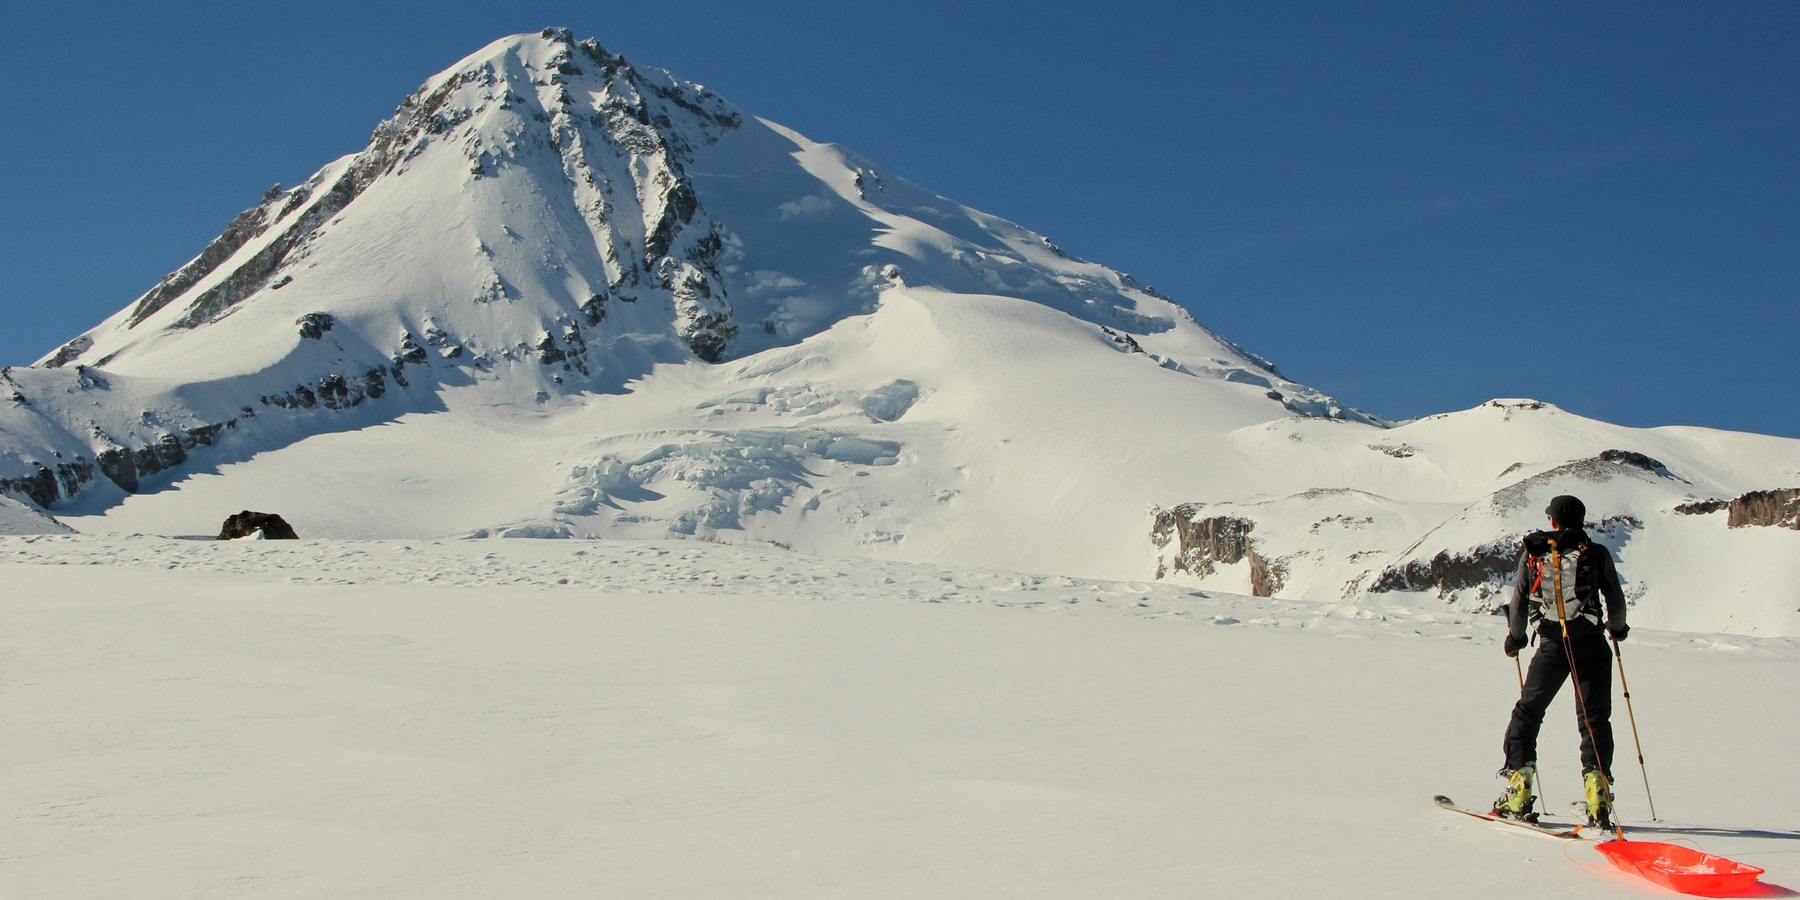 12 Reasons To Visit Mount Hood In The Winter Outdoor Project